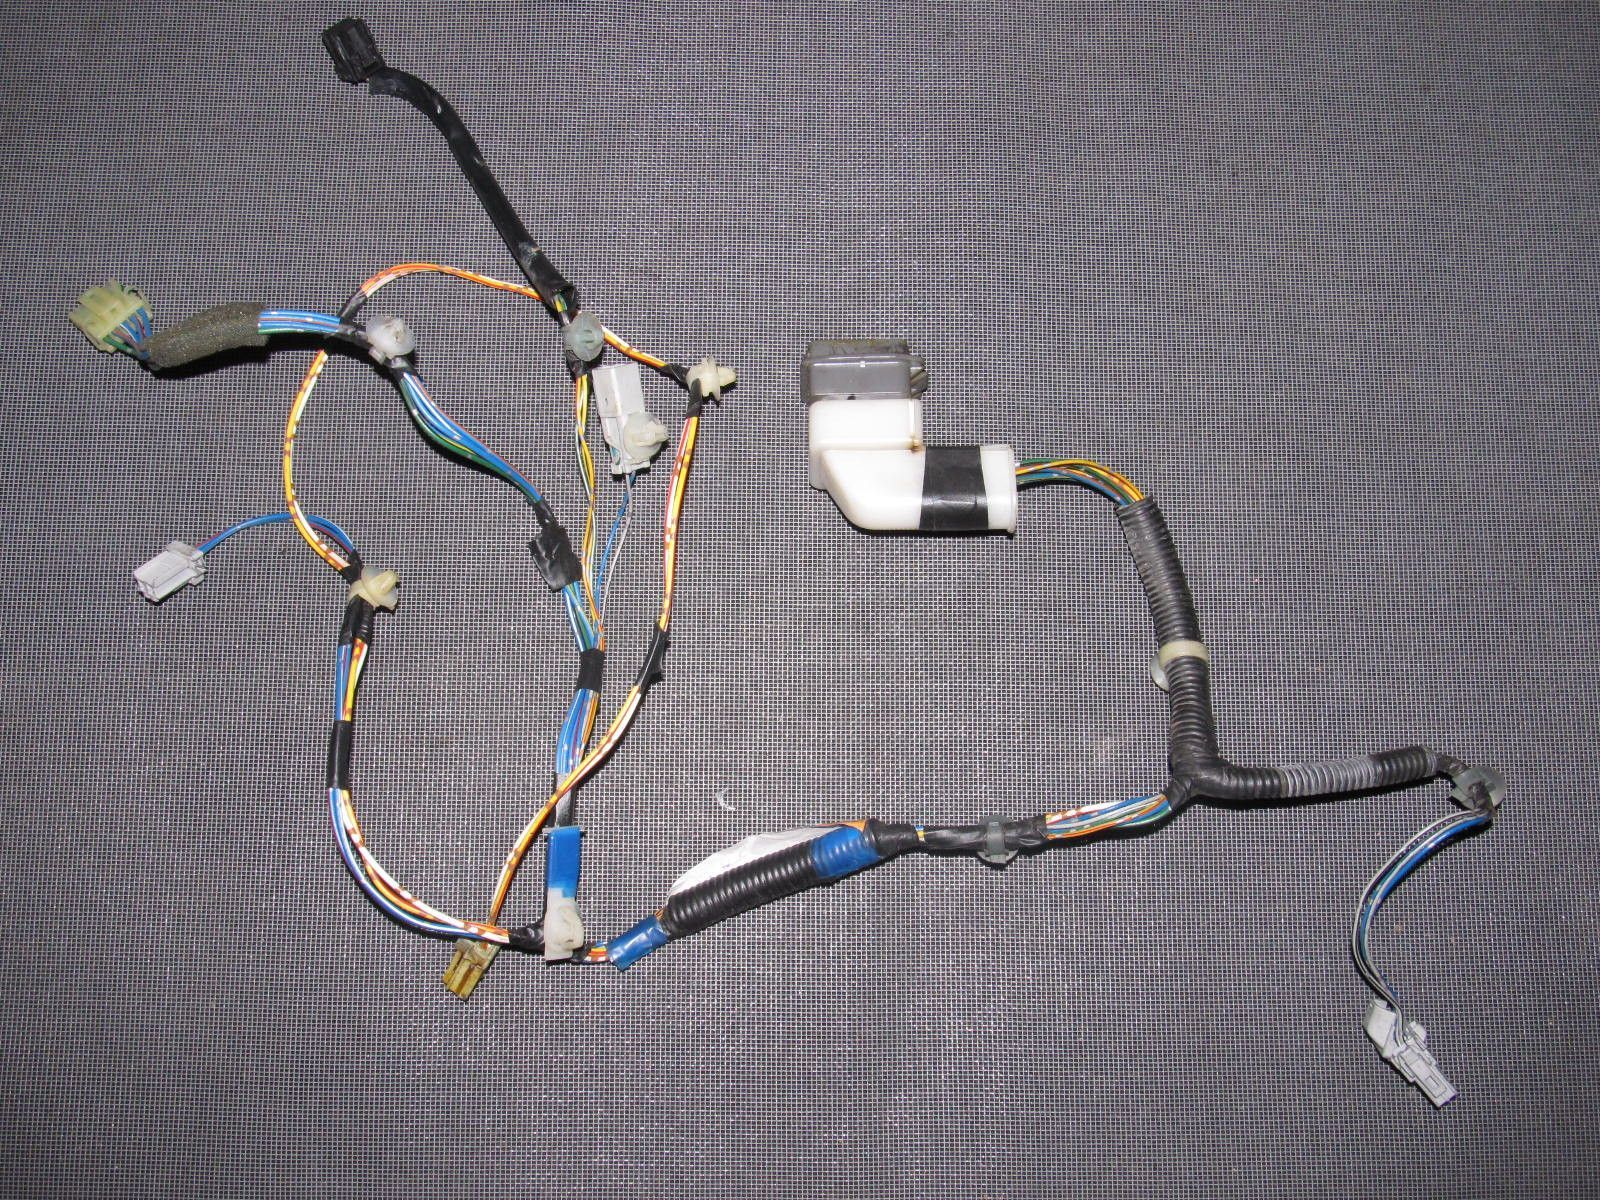 3a666c08d3a905aa050d56d282e44d63 96 97 98 99 00 honda civic oem door wiring harness right honda 1996 honda civic wiring harness at gsmx.co